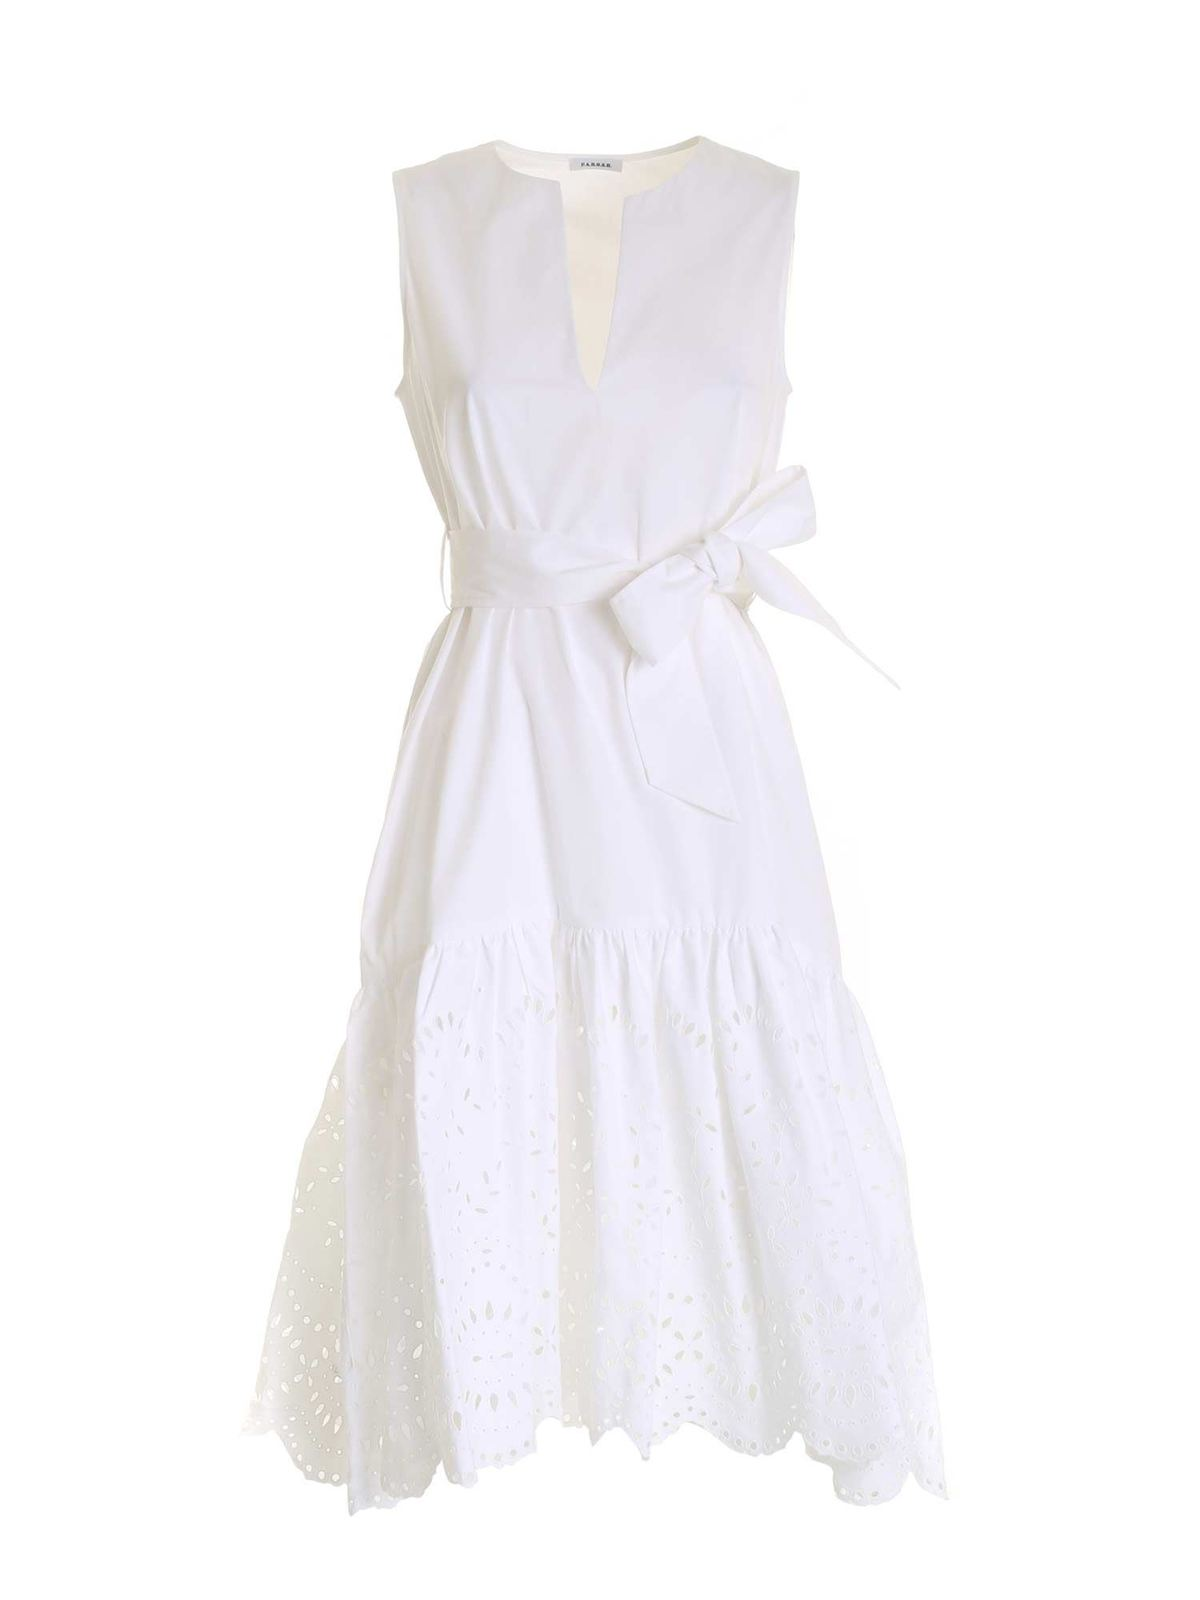 P.A.R.O.S.H. BRODERIE ANGLAISE FLOUNCED DRESS